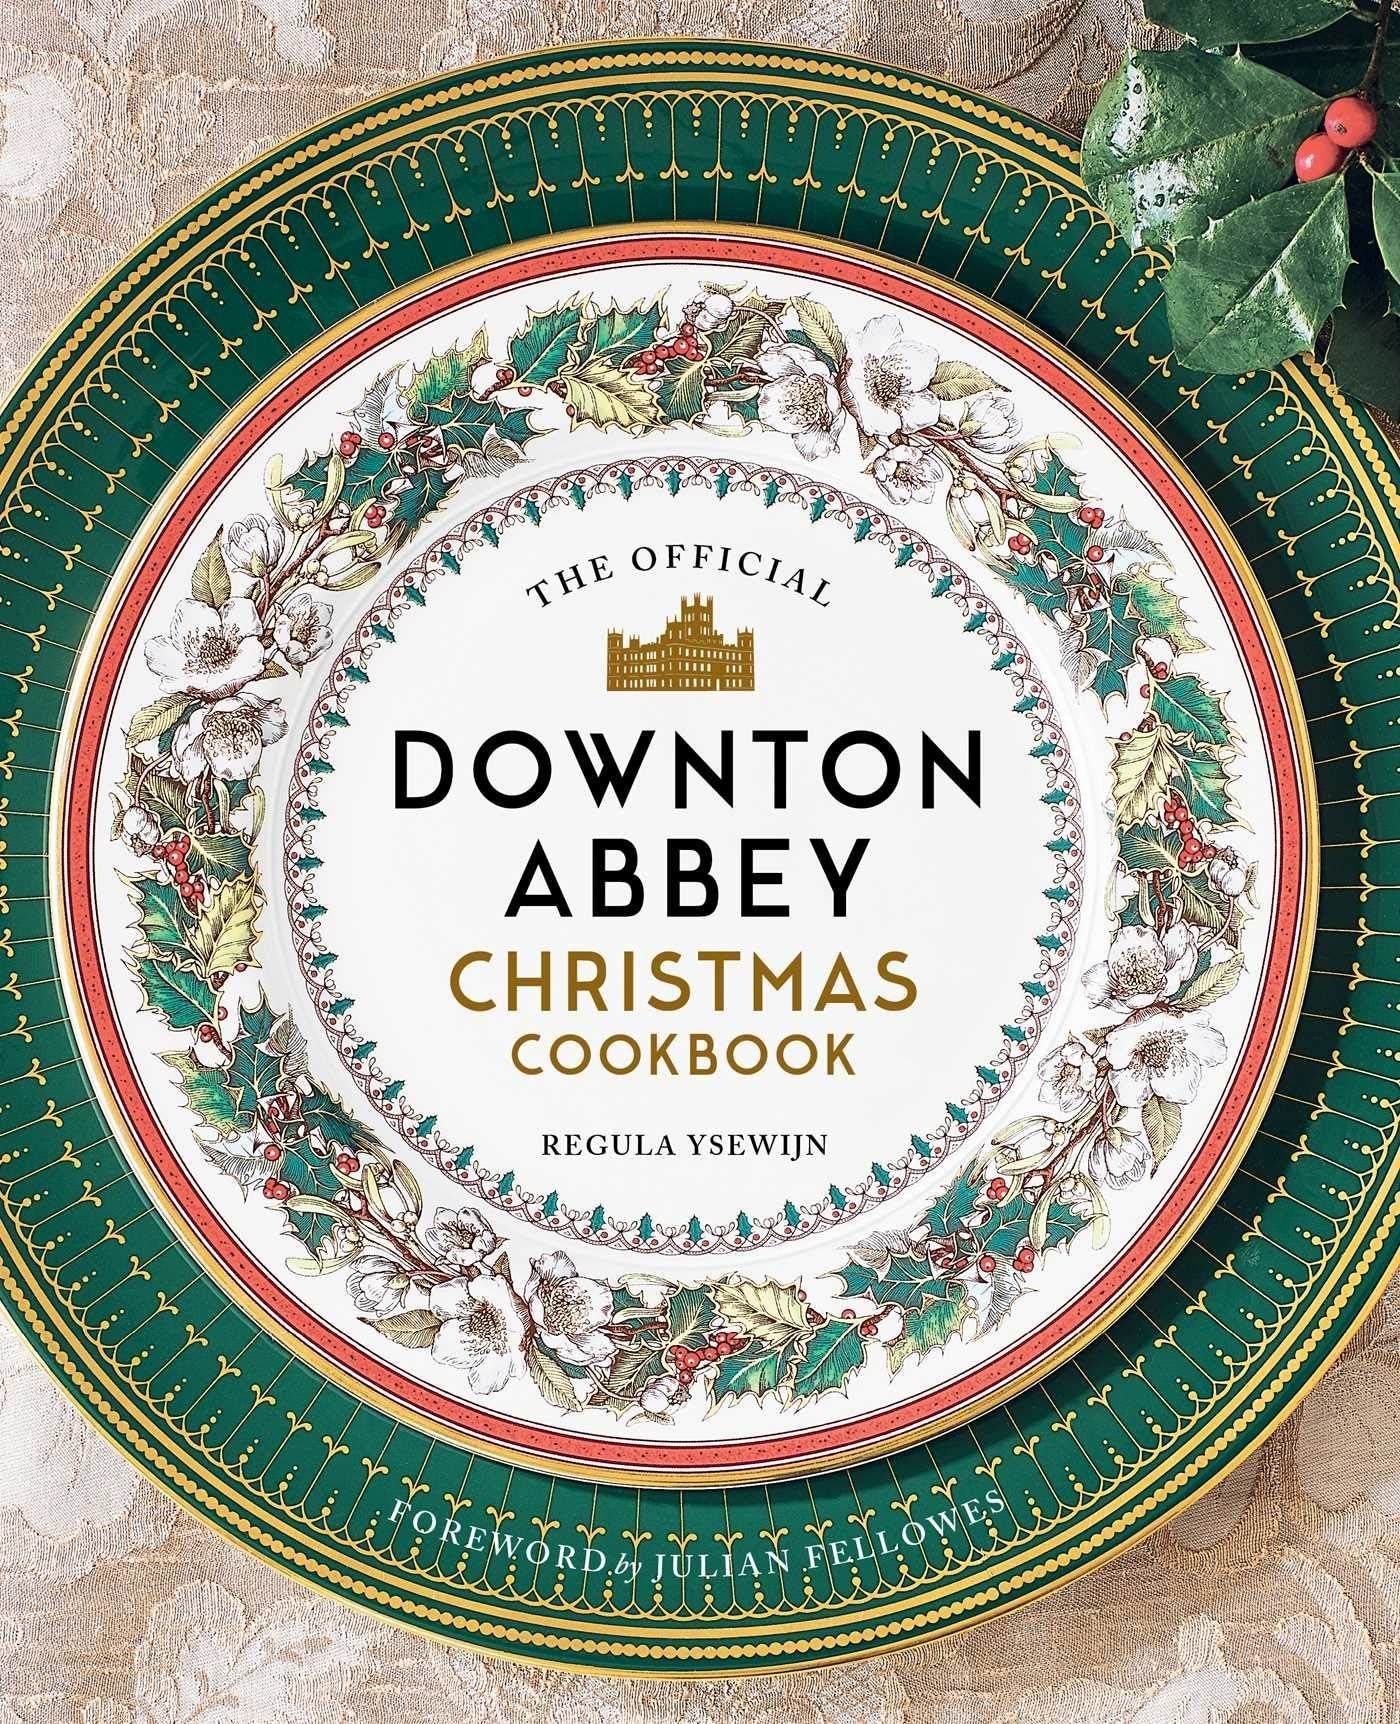 The cover of The Official Downton Abbey Christmas Cookbook by Regula Ysewijn